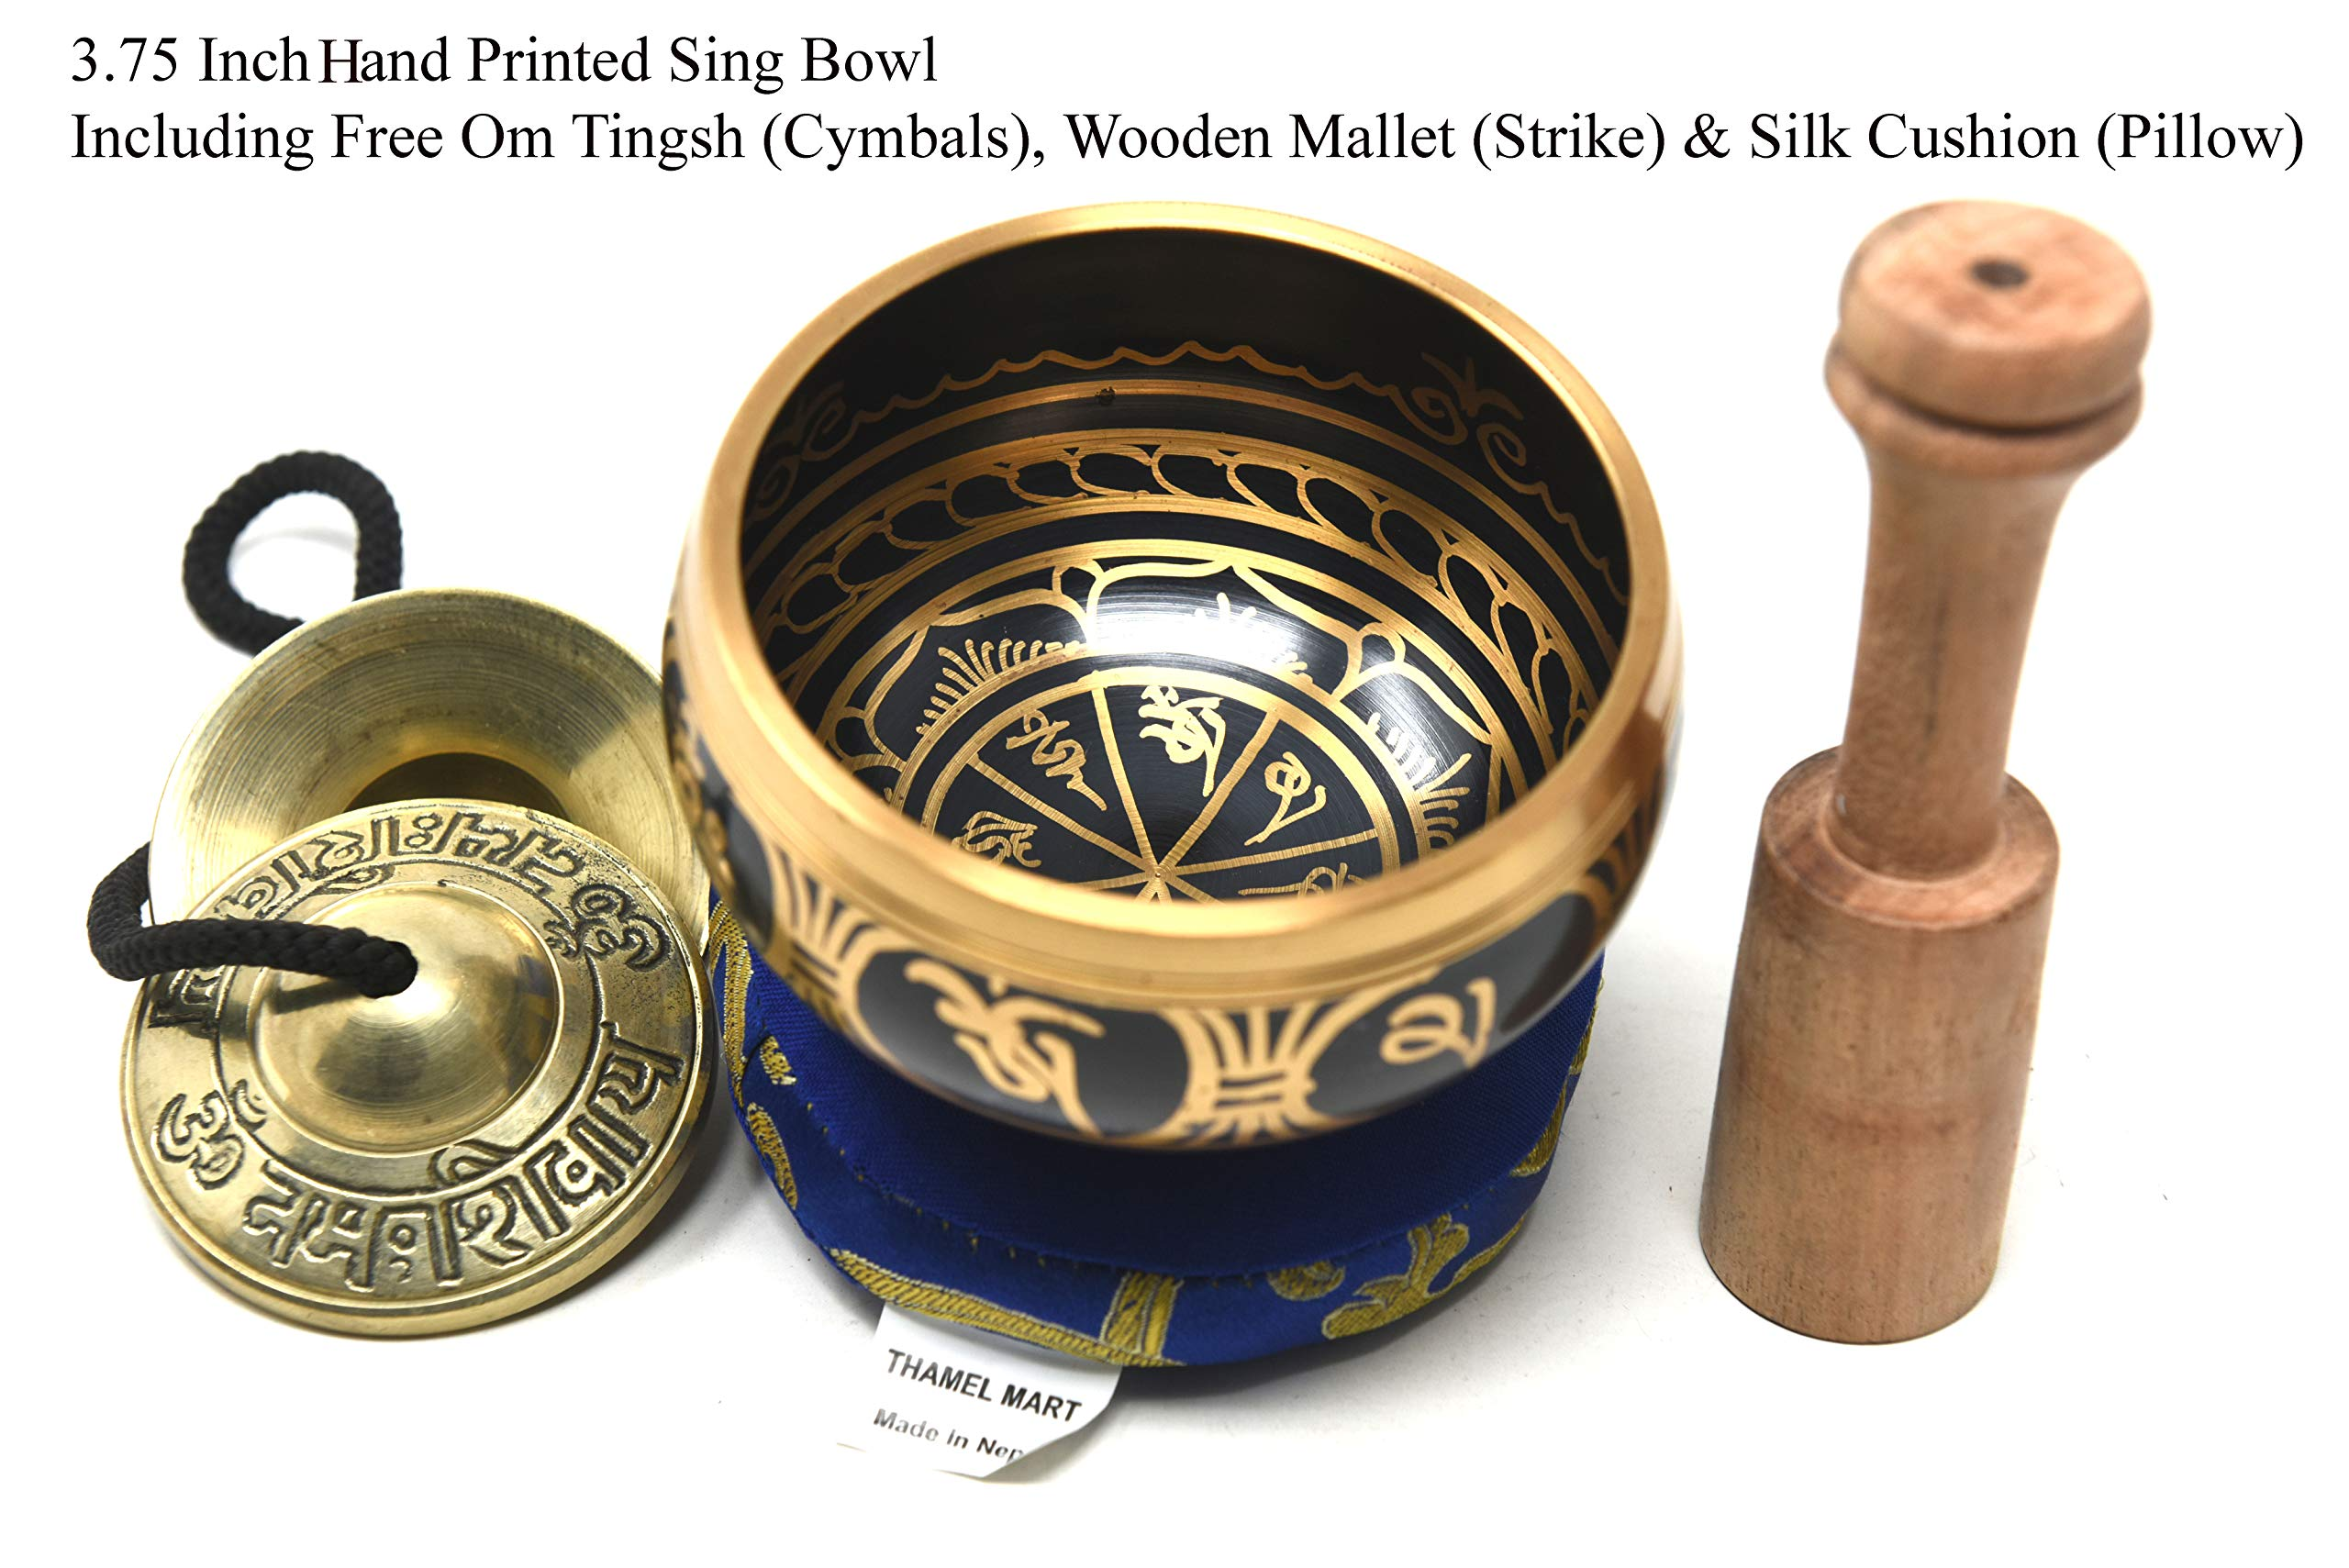 3.75'' Exquisite Tibetan Singing Bowl Set for Meditation ~ Mantra Symbols Painted ~ Om Nava Sivaya Tingsha Cymbals~ Silk Cushion & Wooden Mallet Included ~Handmade in Nepal by Thamelmart